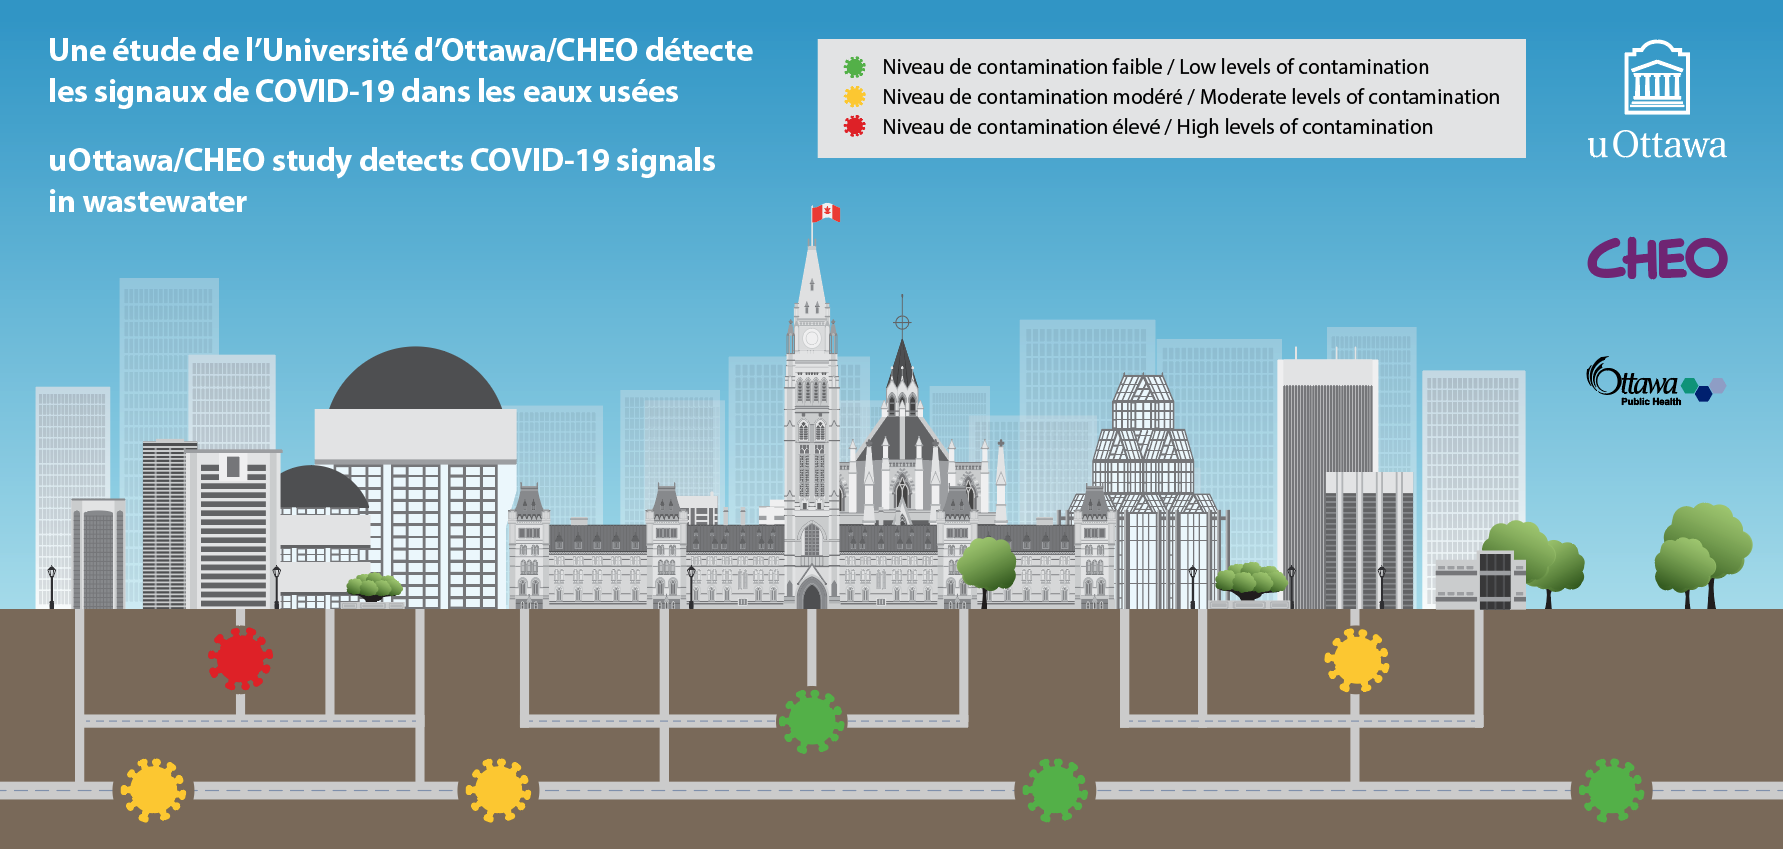 illustration of the city of Ottawa and its sewer system